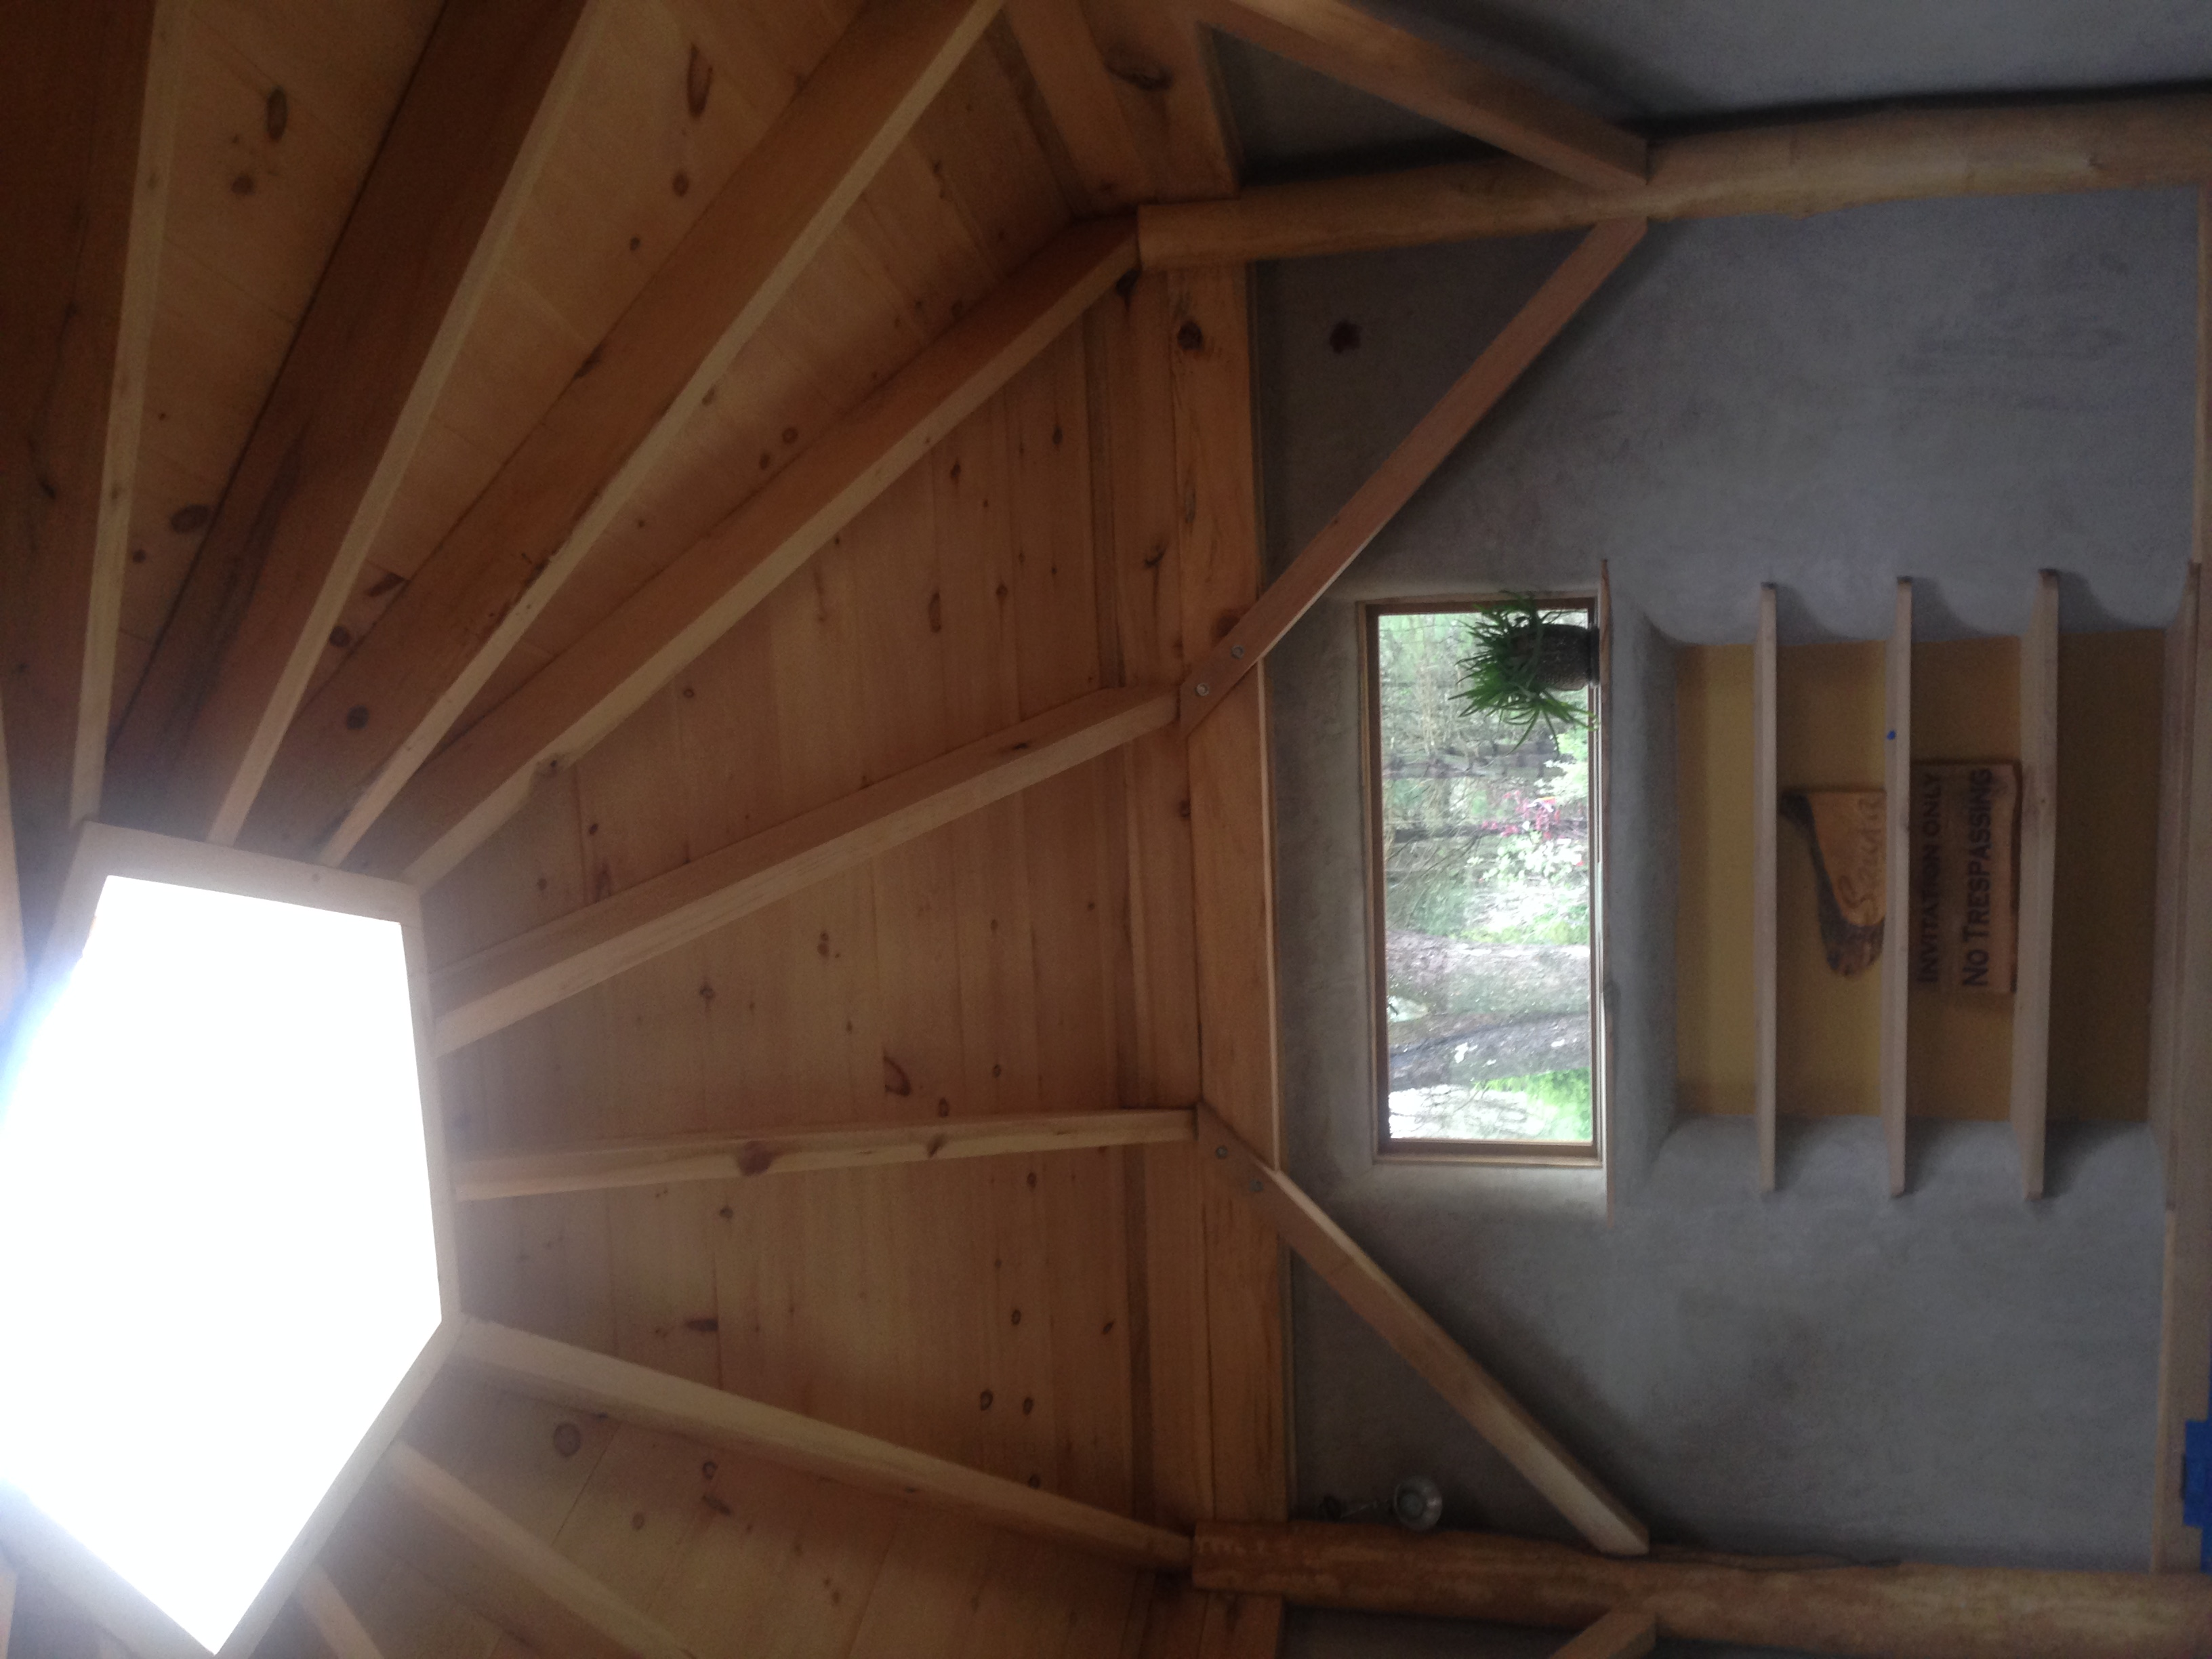 Roof insulated from outside